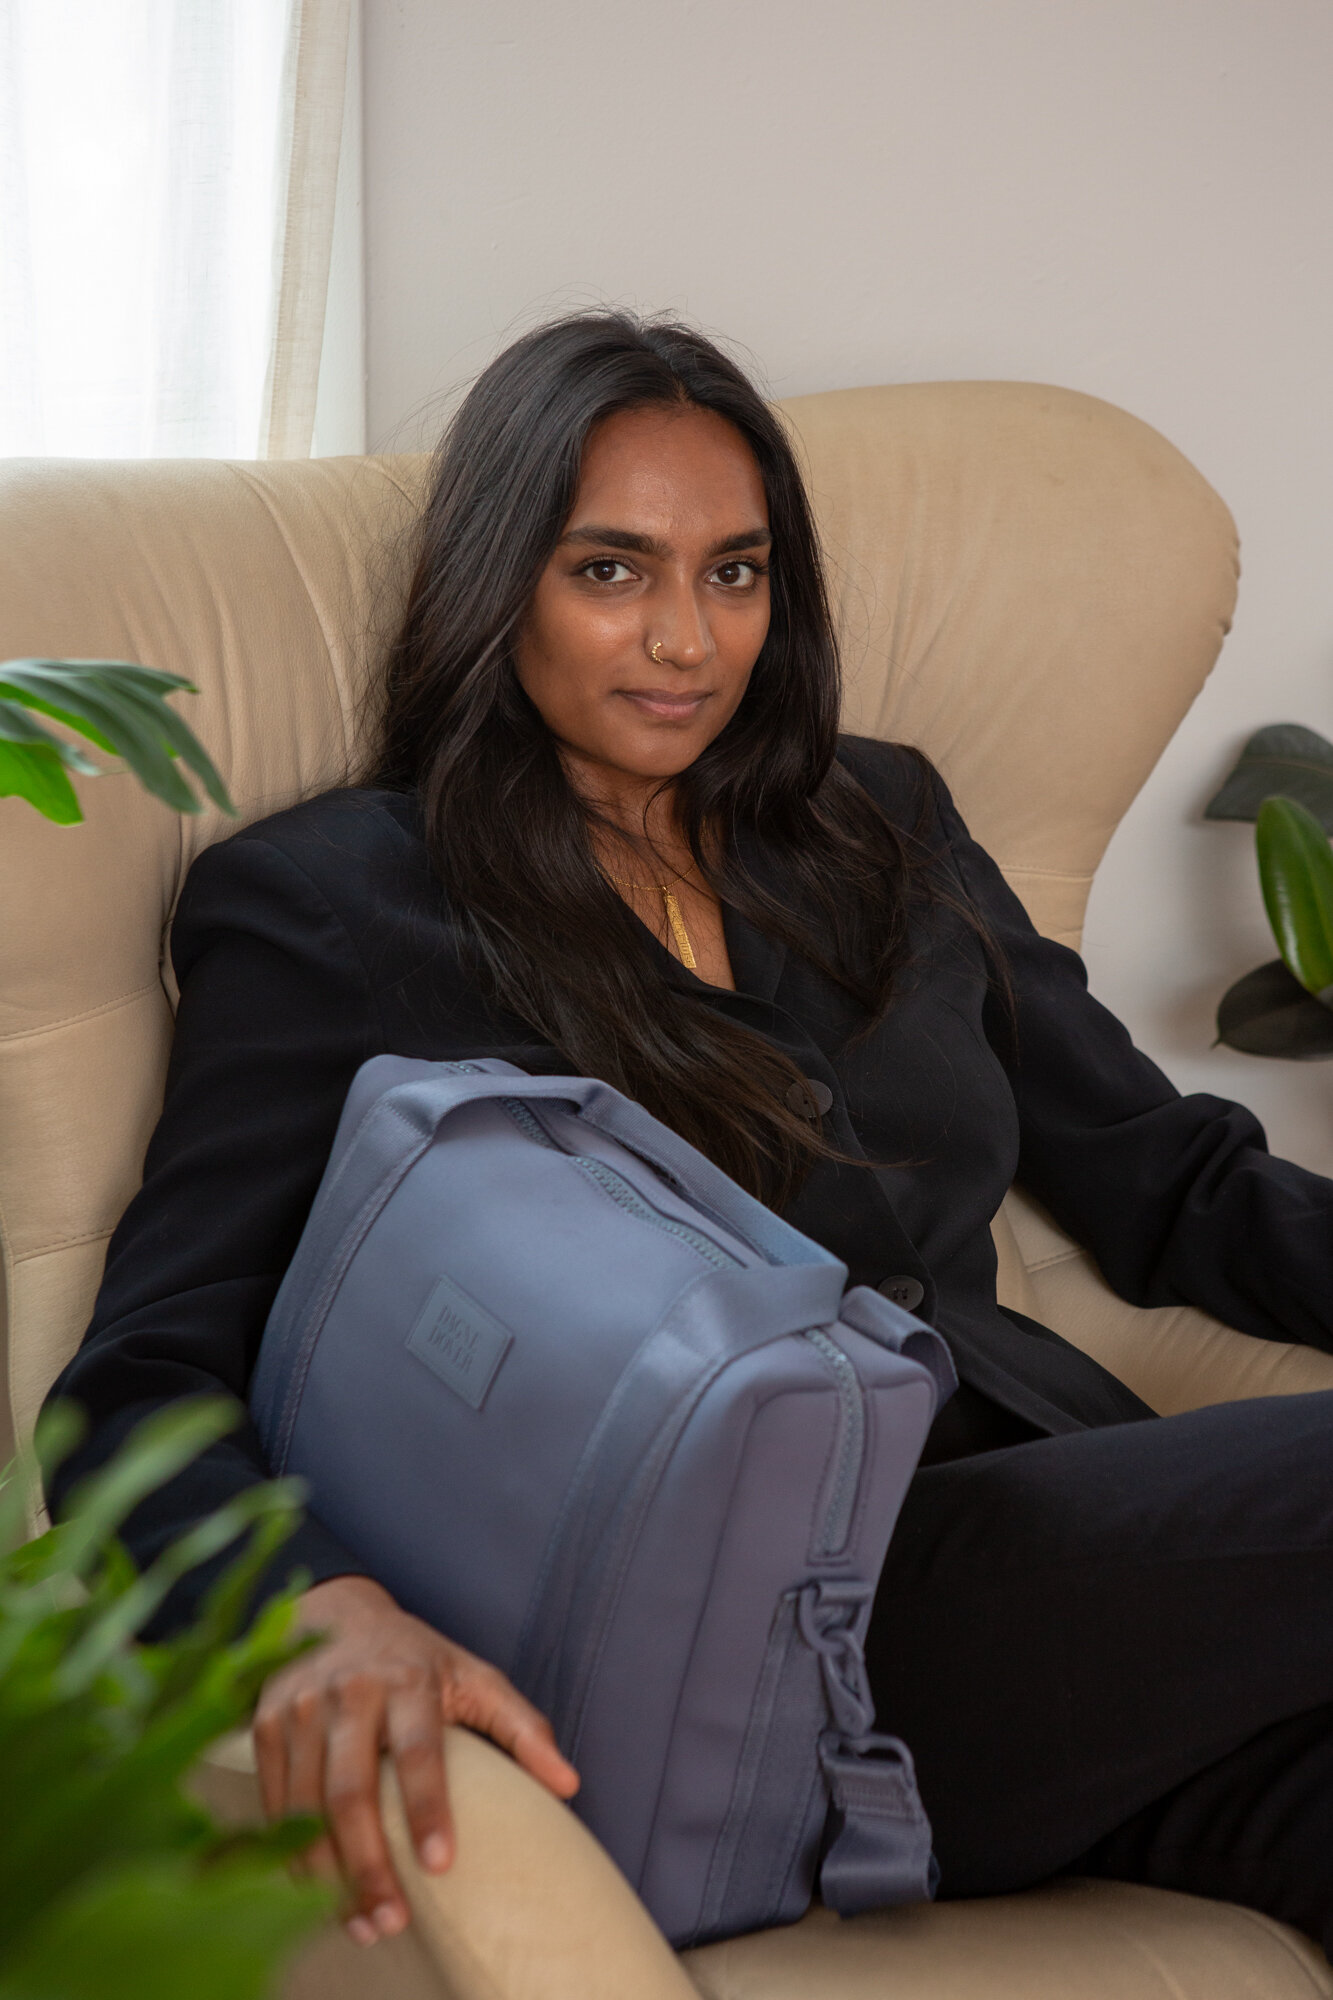 Nafisa with the Dagne Dover Weston Laptop Bag